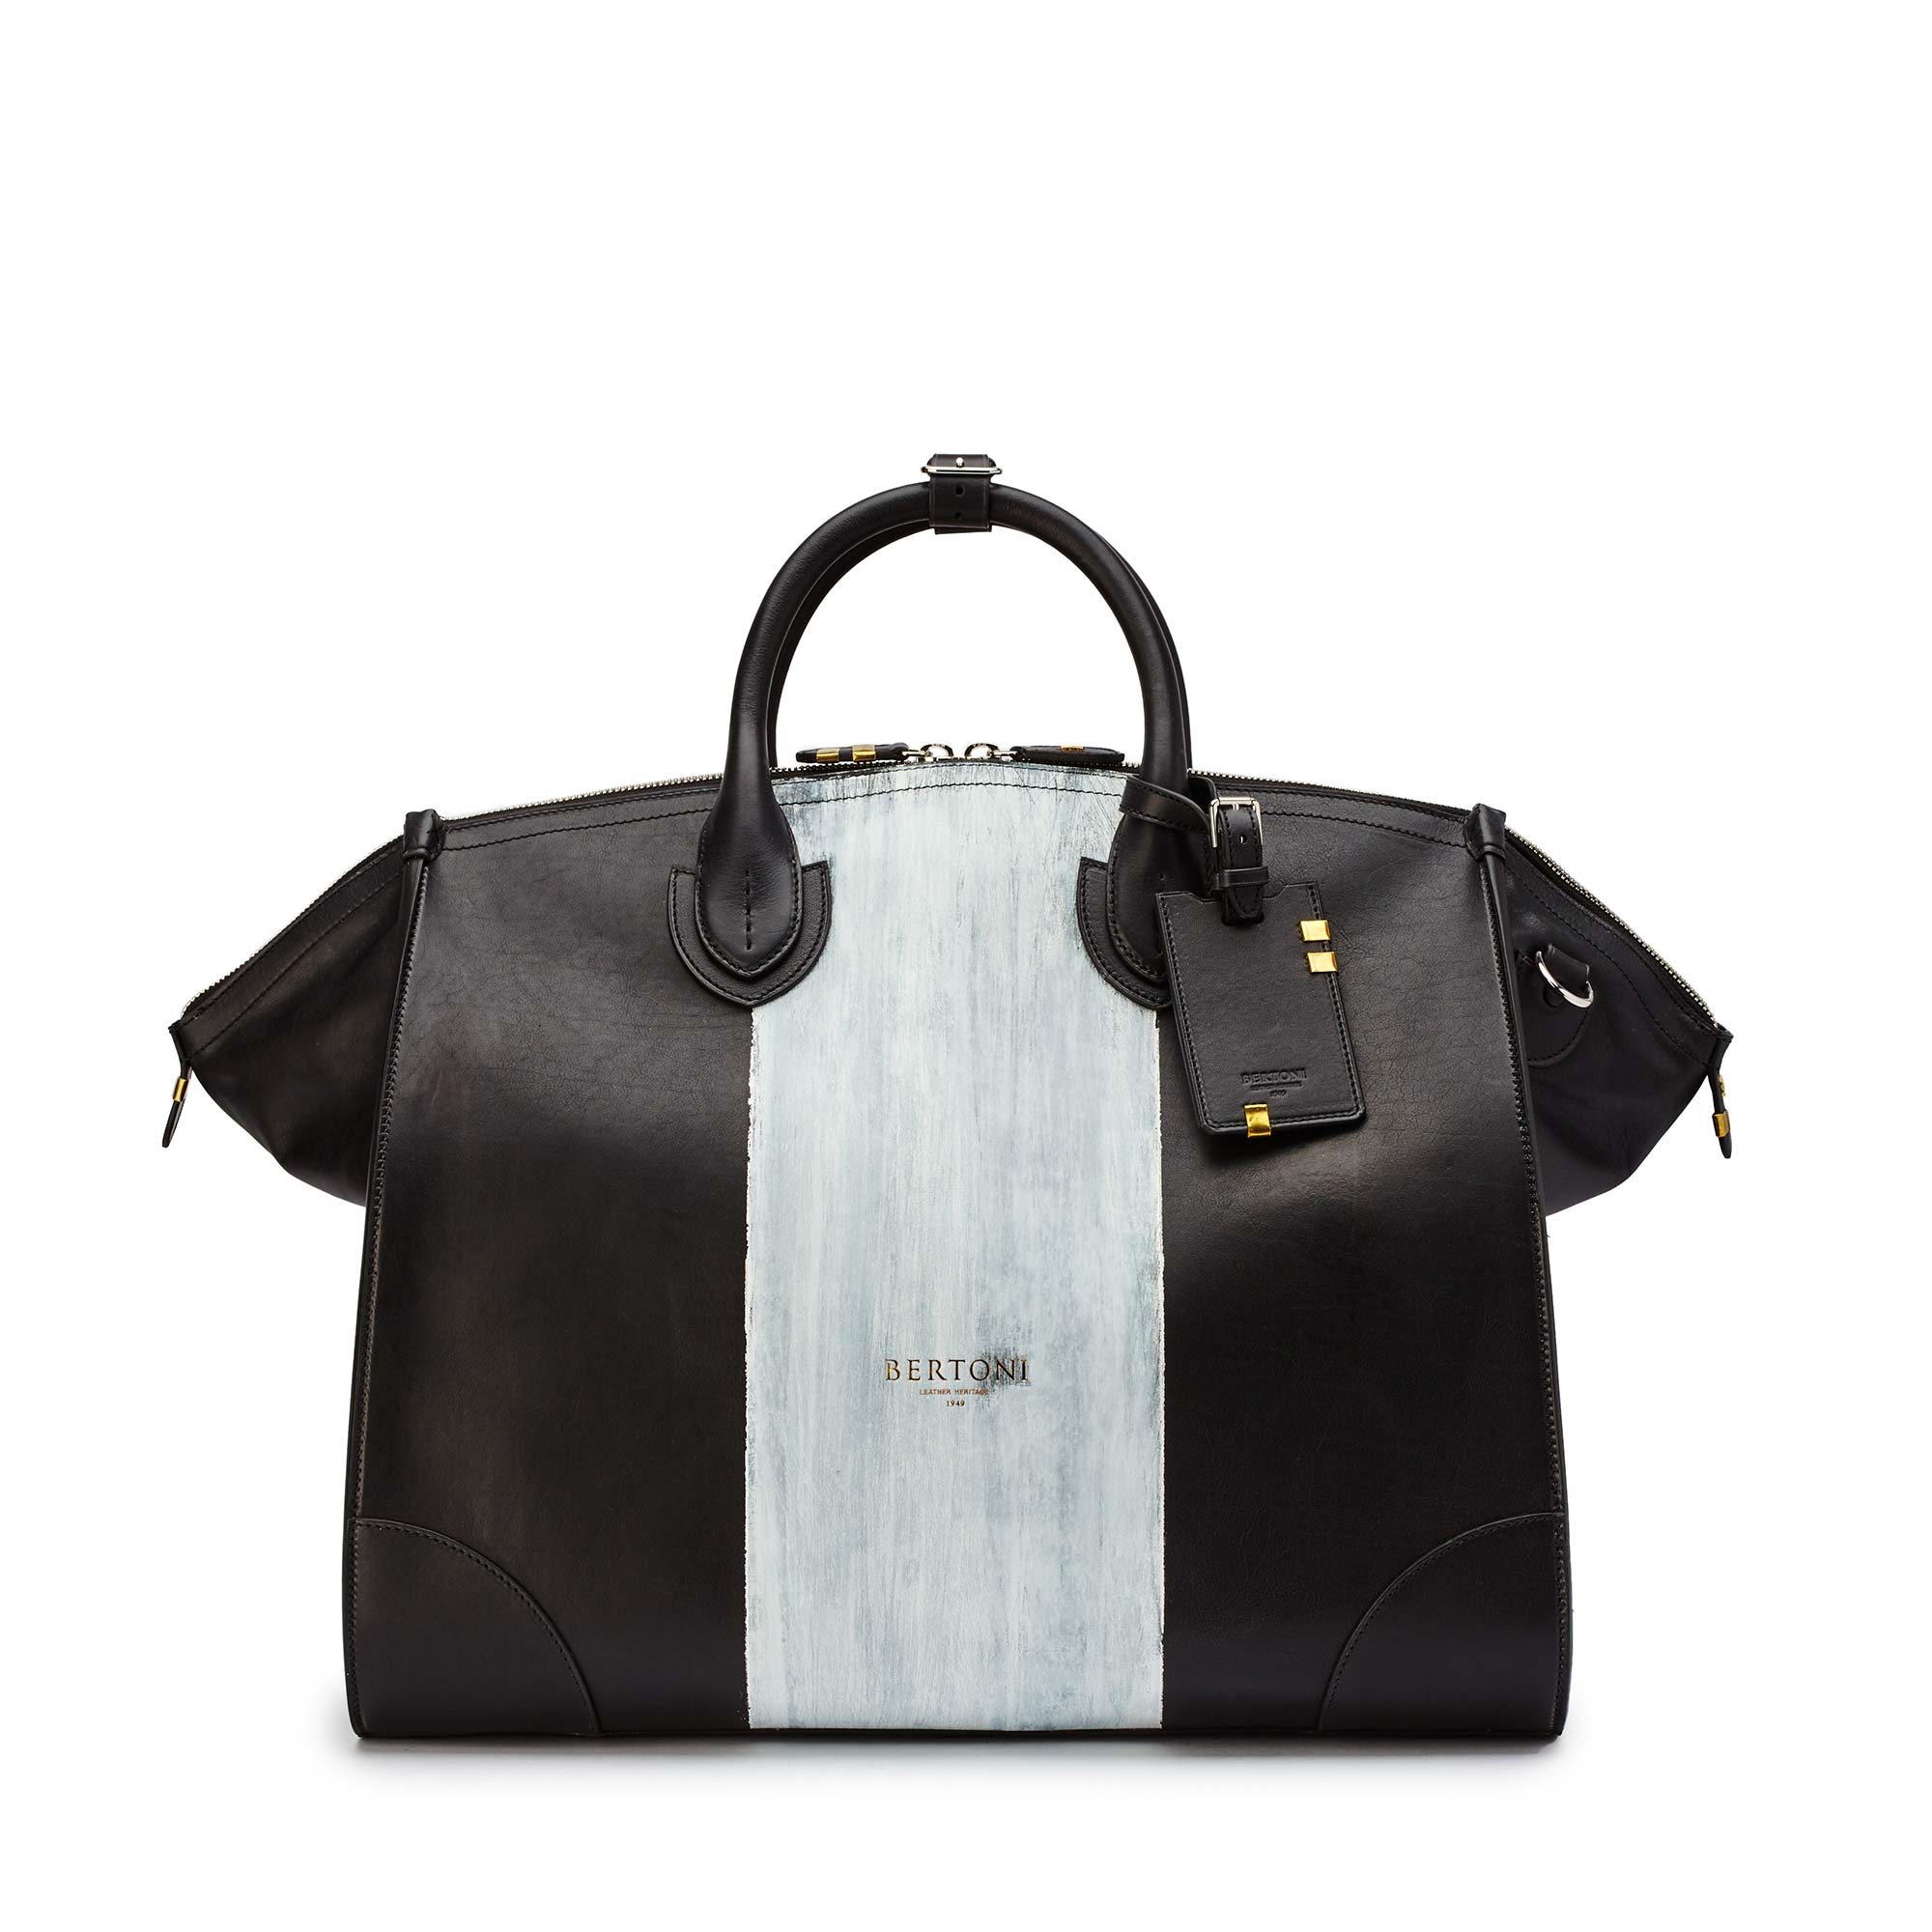 Gulliver-black-ivory-rock-calf-bag-Bertoni-1949